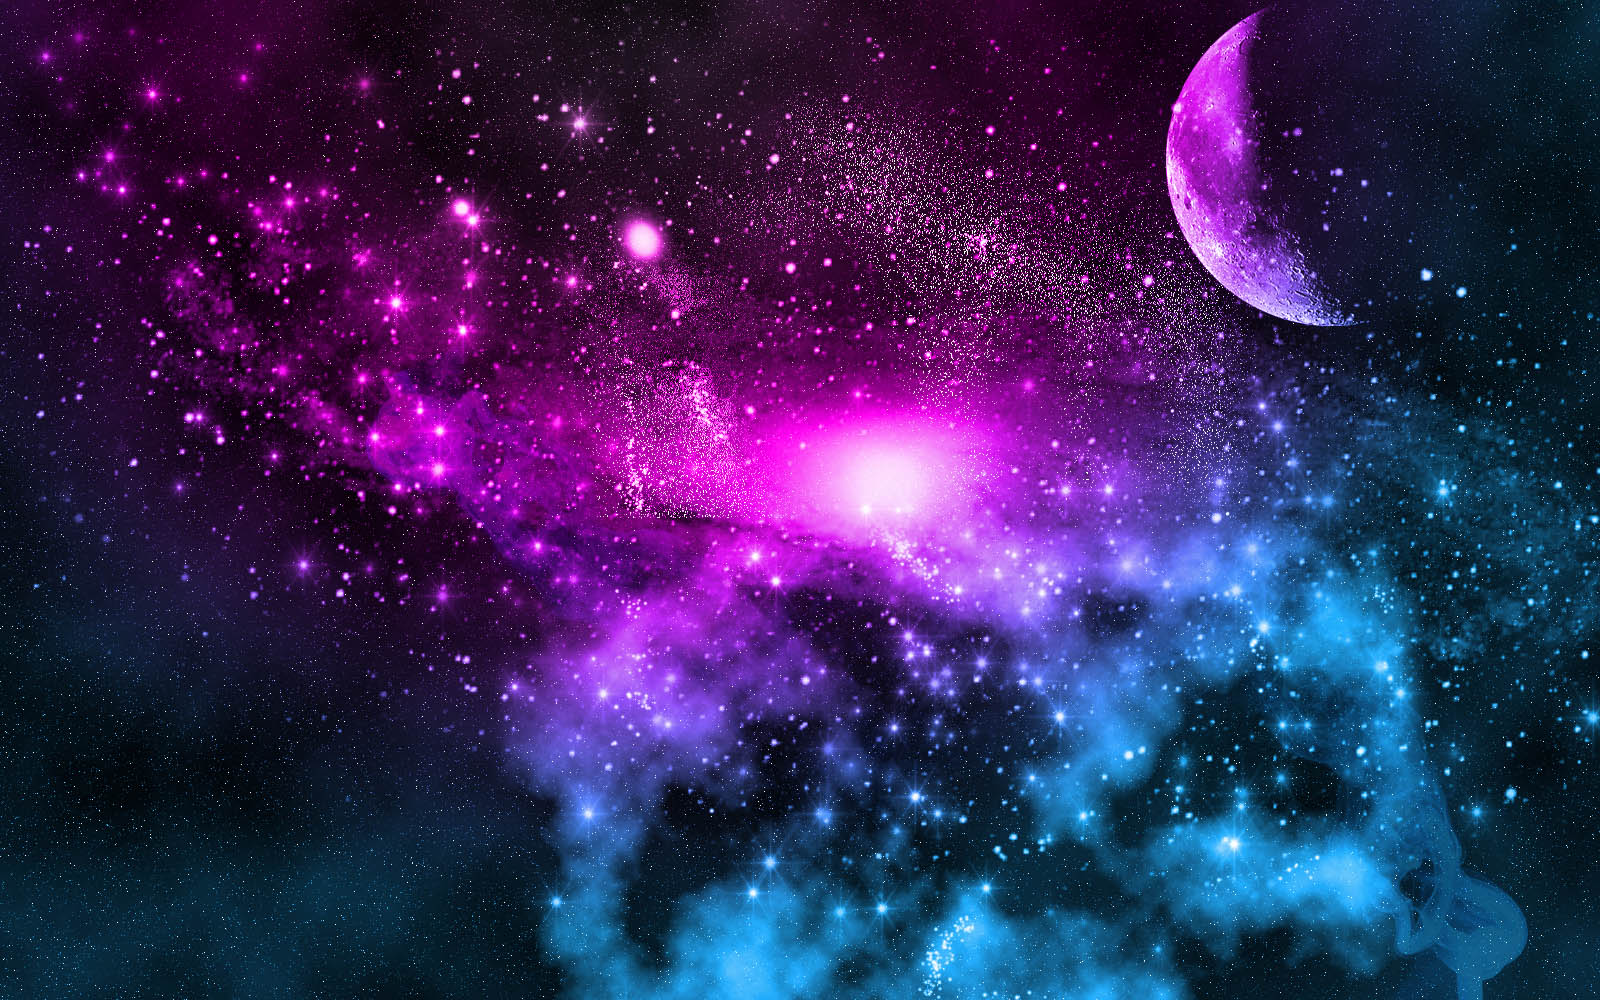 Galaxy Space Wallpaper 4k Apk Download: Galactic Wallpaper Backgrounds